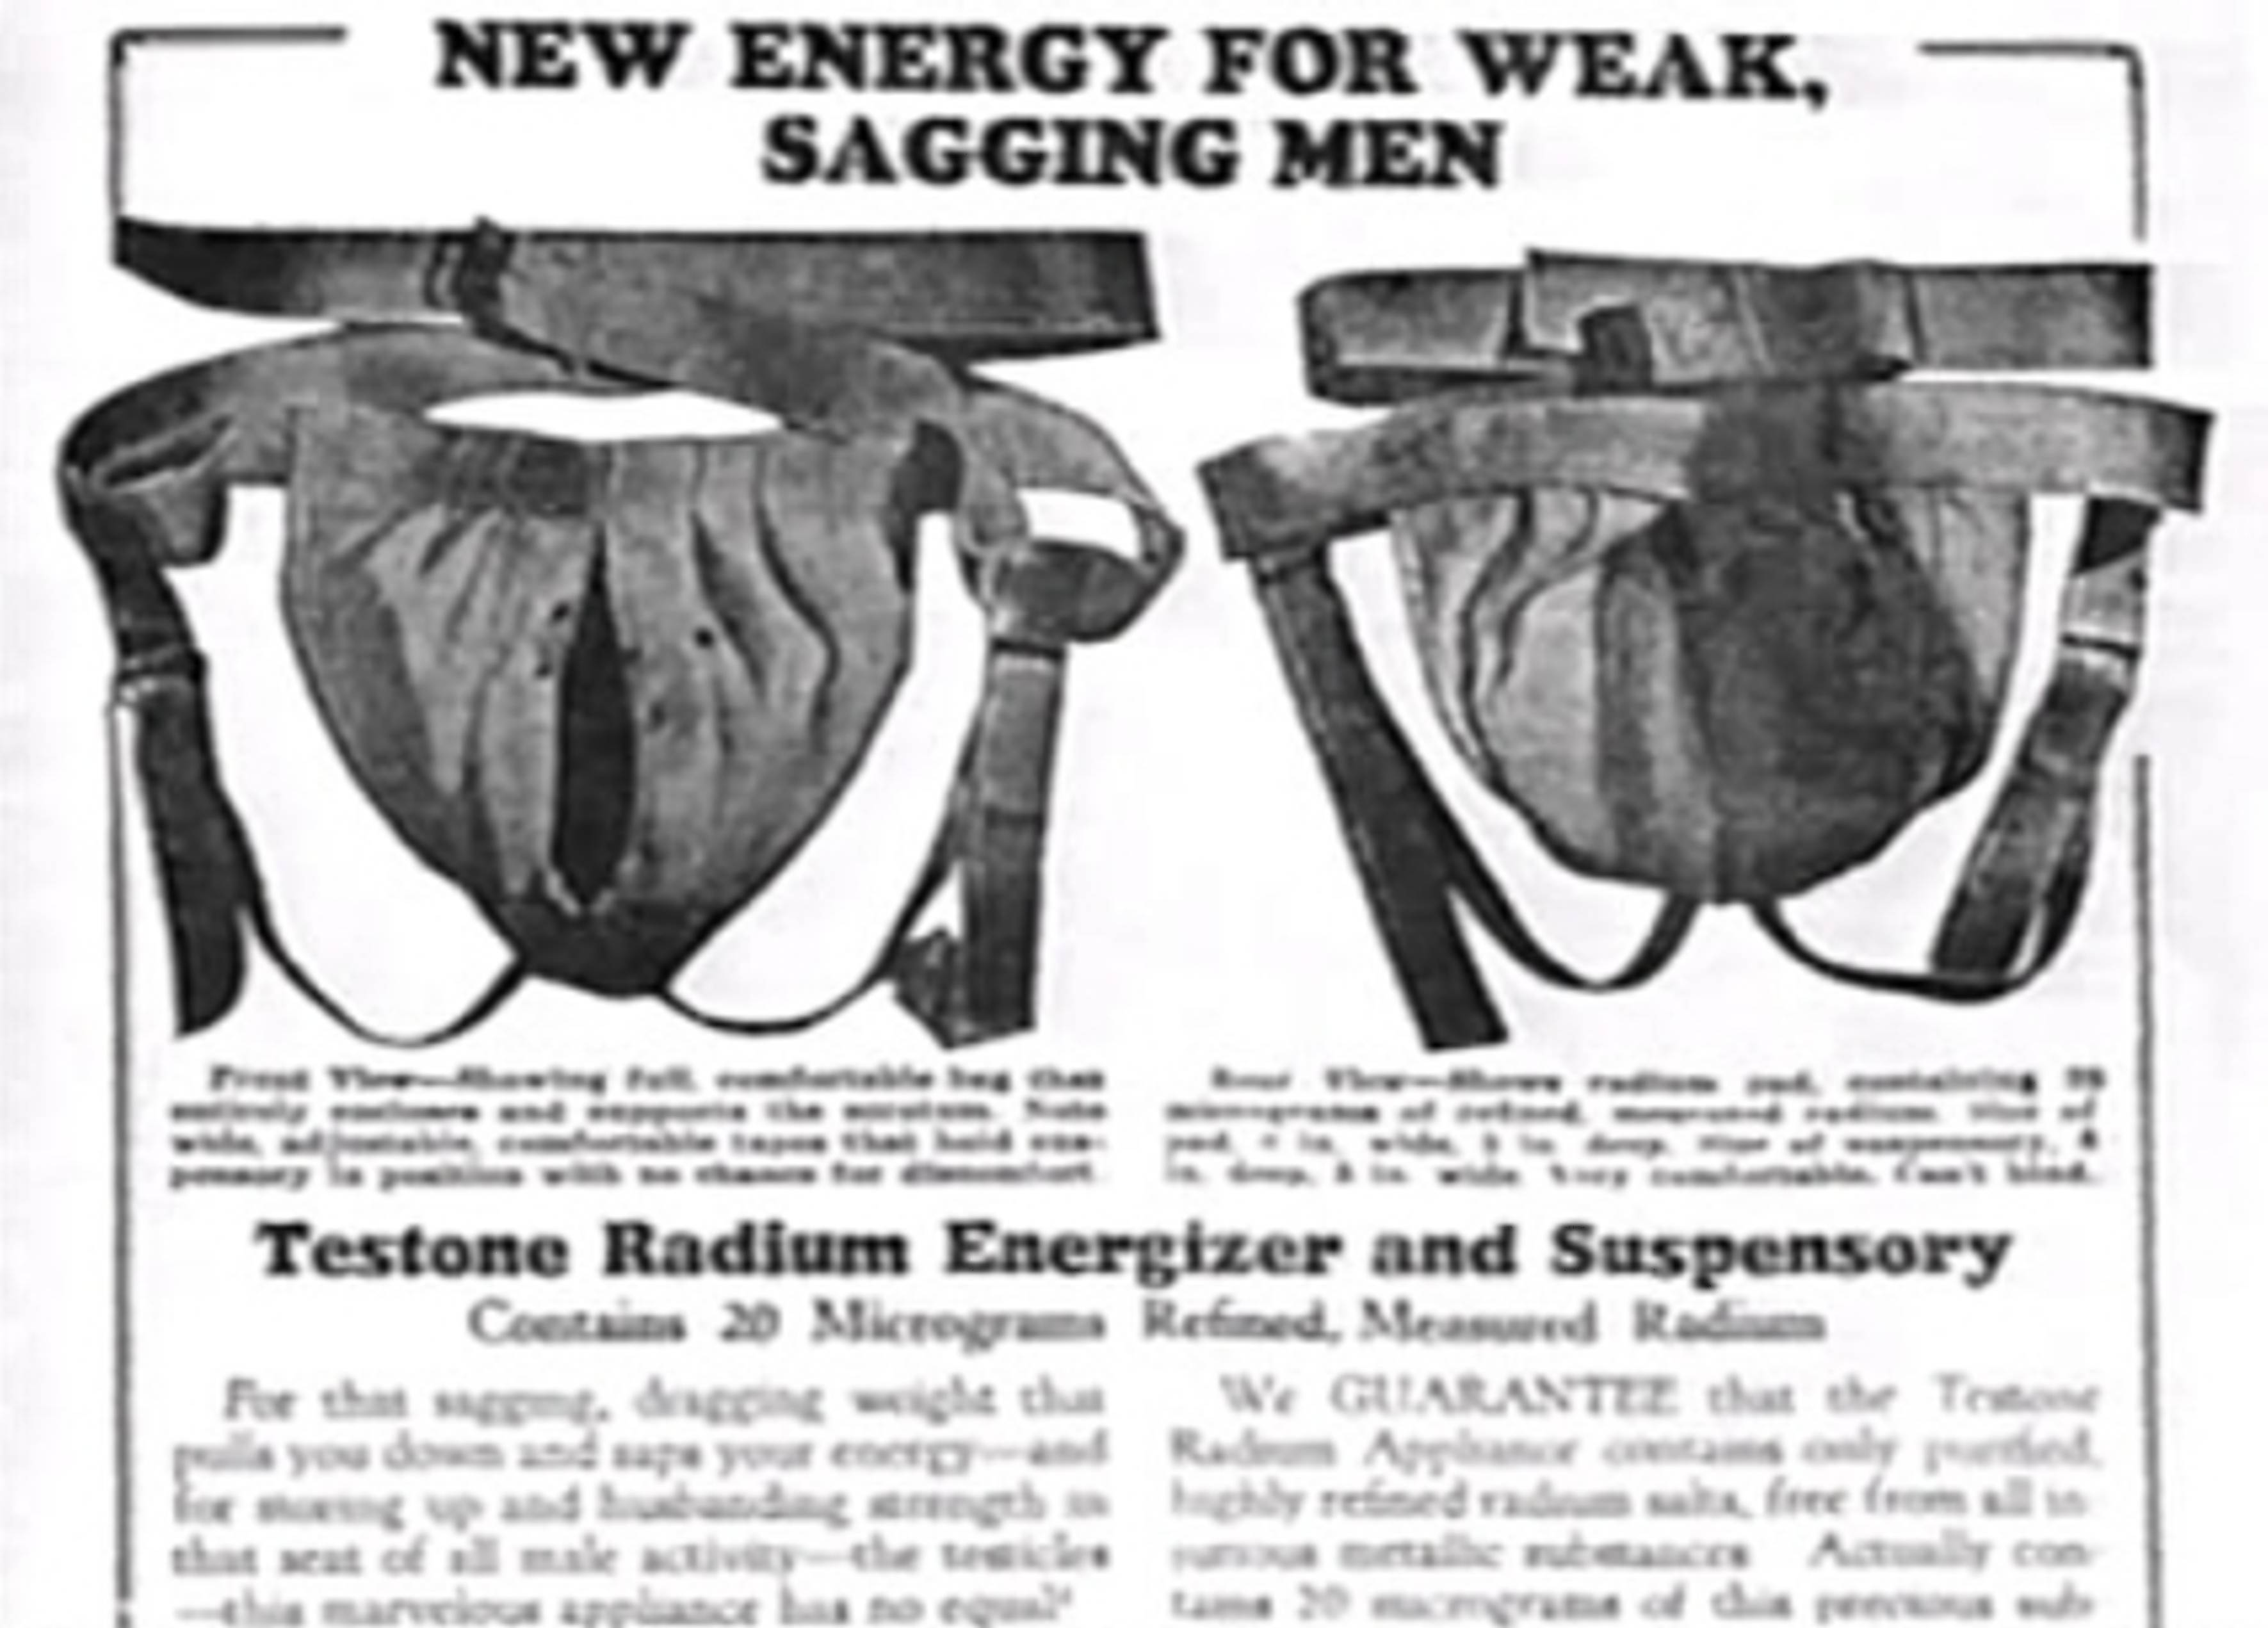 Radium Testicle Support, Marie Curie, Radioactive, radium - HeadStuff.org